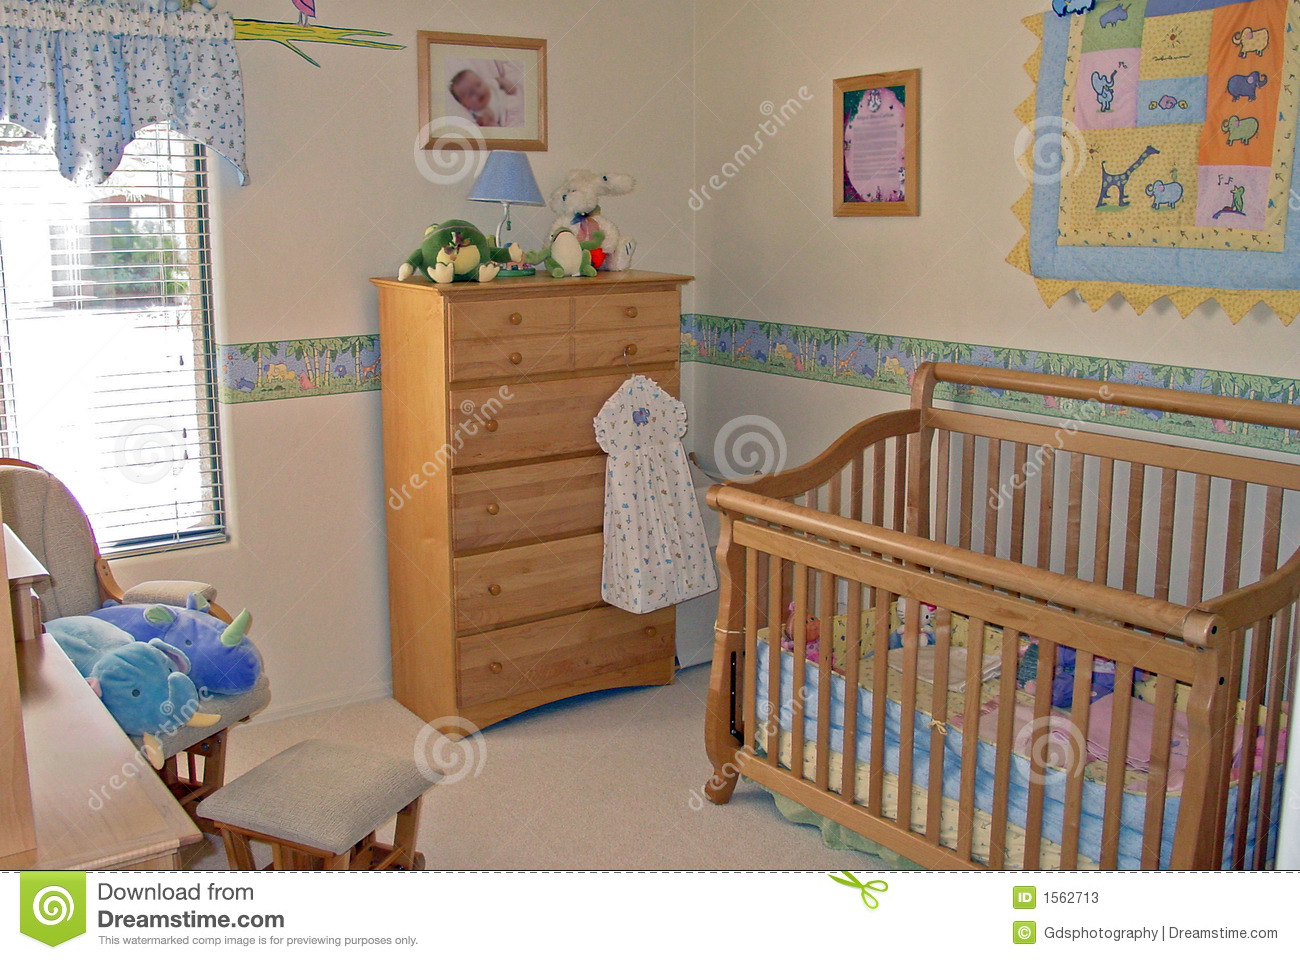 Bedroom Baby S Room Stock Image Image Of Rocker Design 1562713